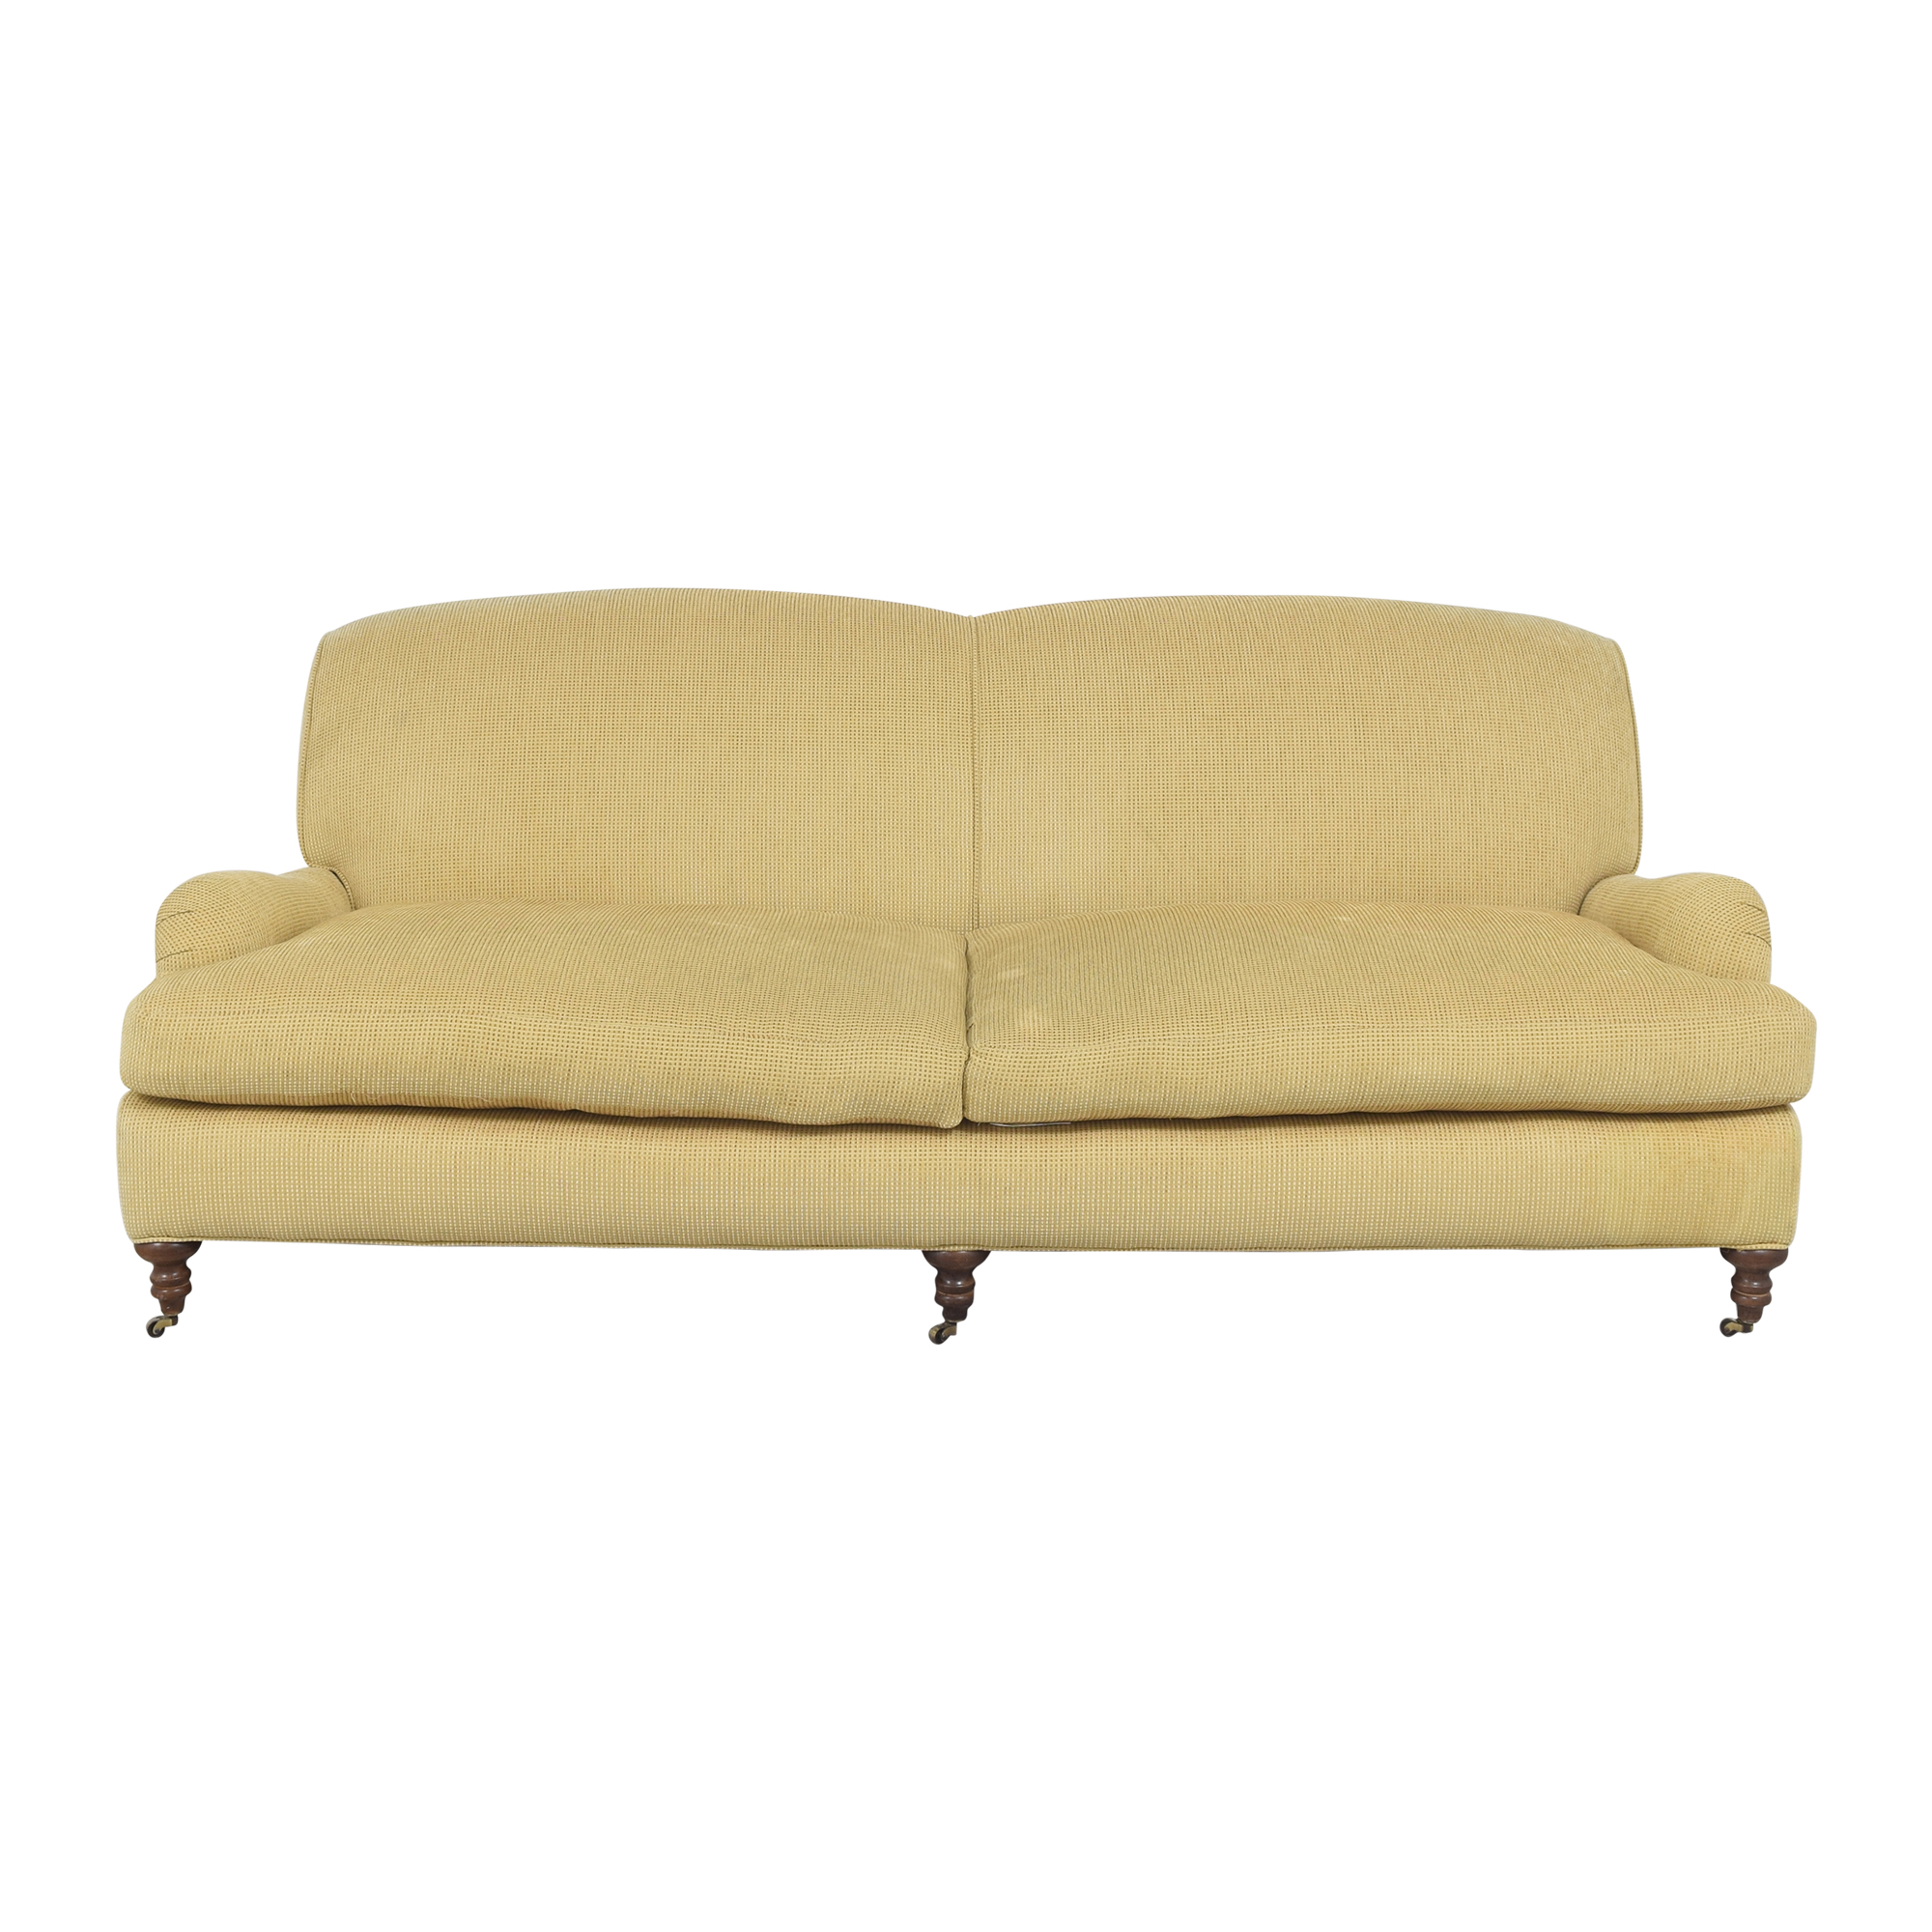 Lee Industries Lee Industries English Roll Arm Sofa nyc